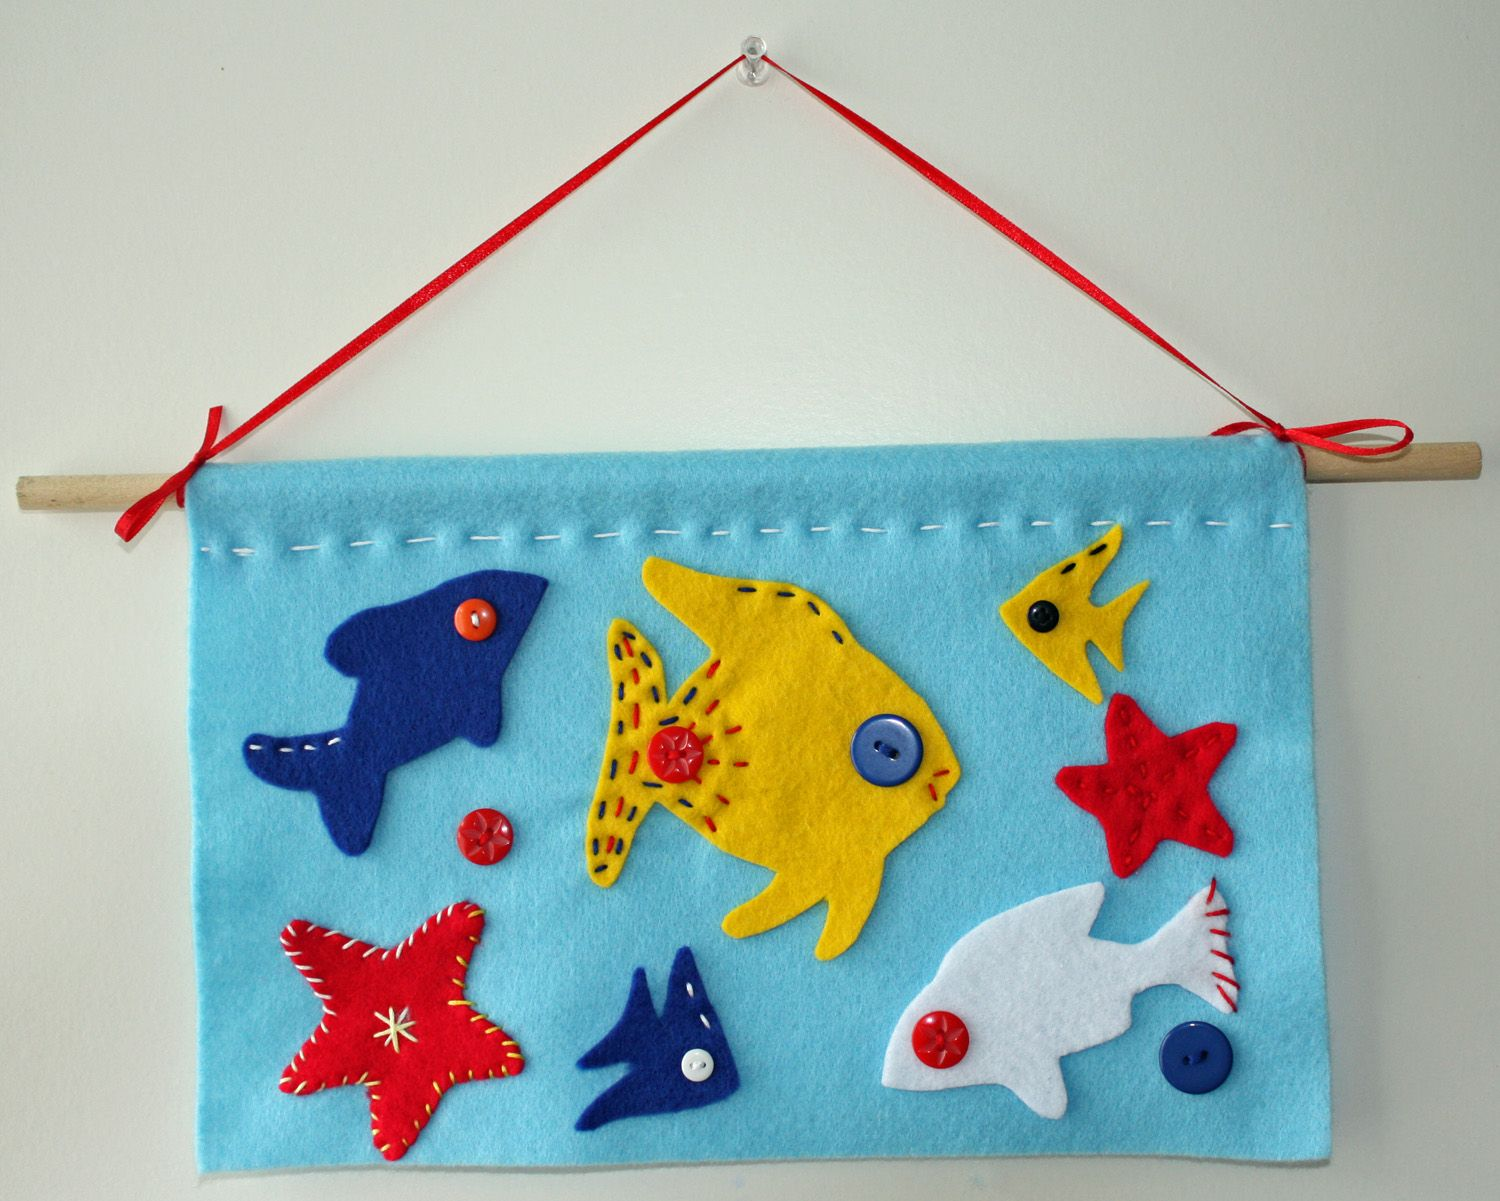 29+ Craft ideas for kidswall hanging ideas